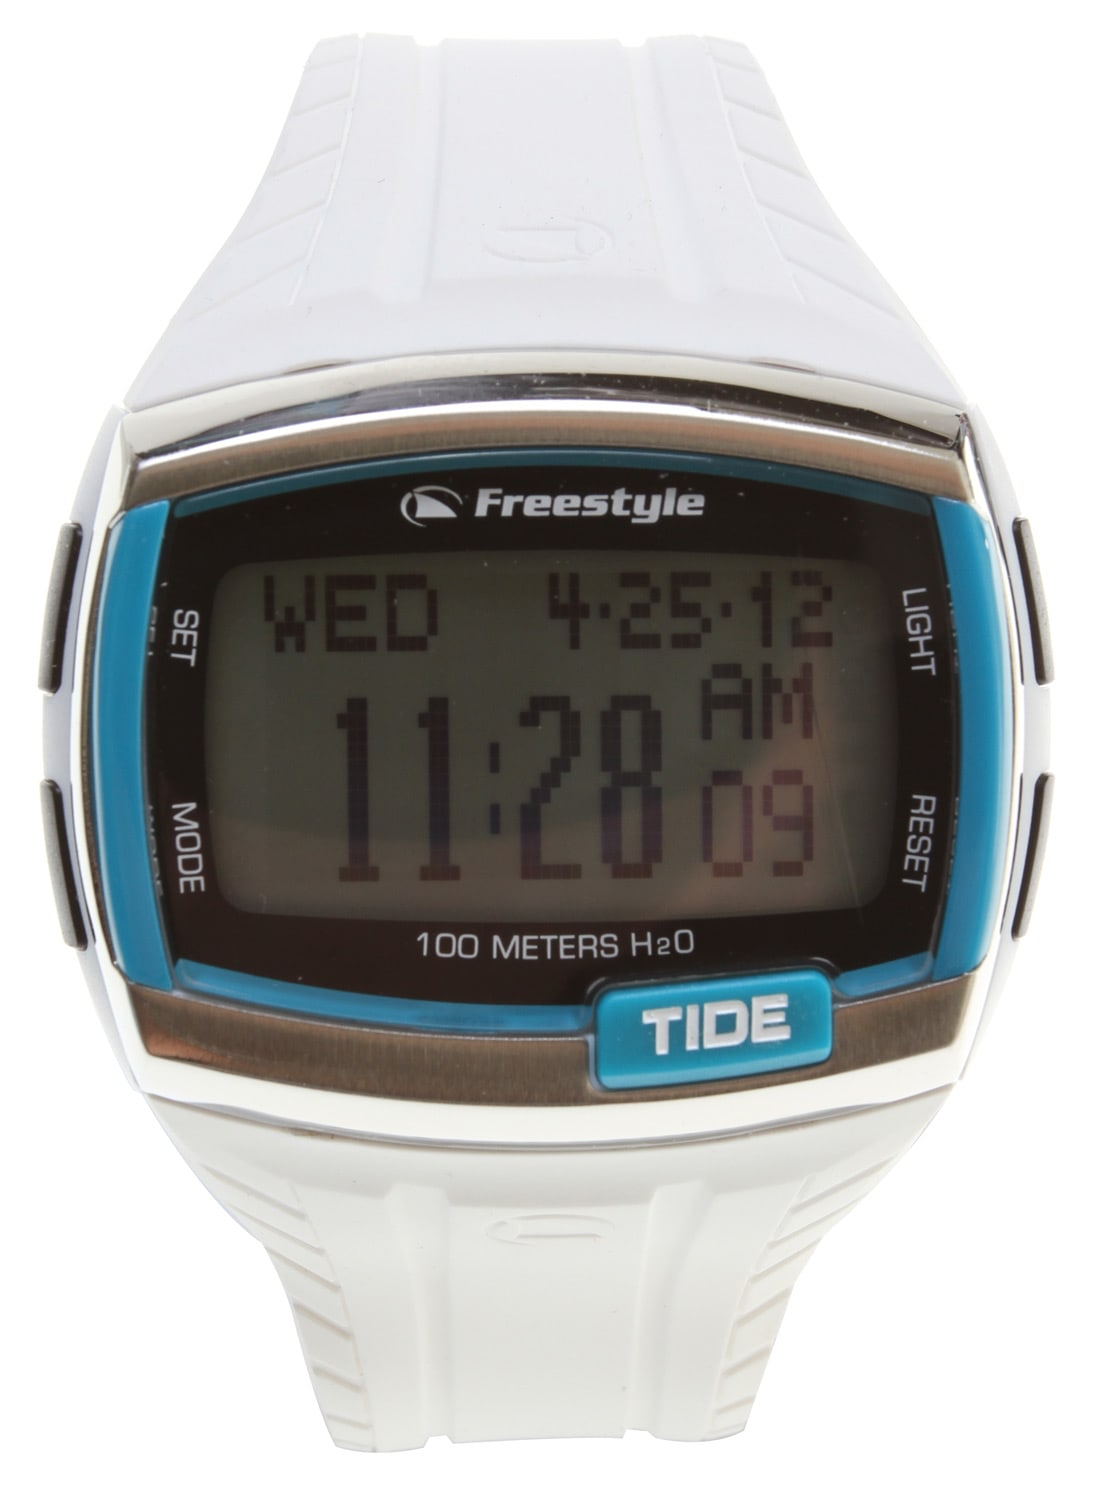 Tide moon phase watches Watches – Compare Prices, Read Reviews and